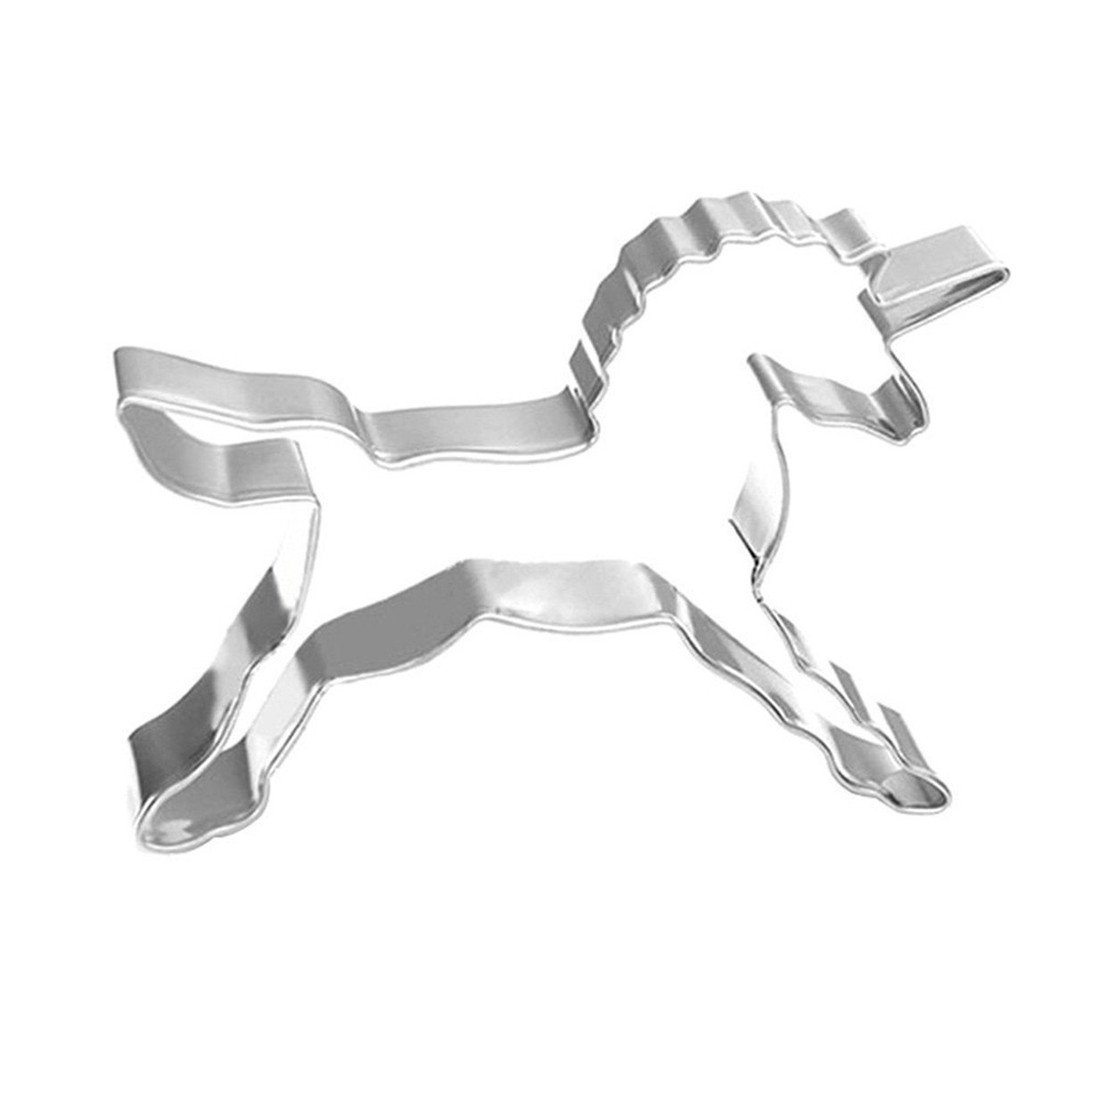 VWH Unicorn Cookie Cutter Biscuit Mold, Stainless Steel